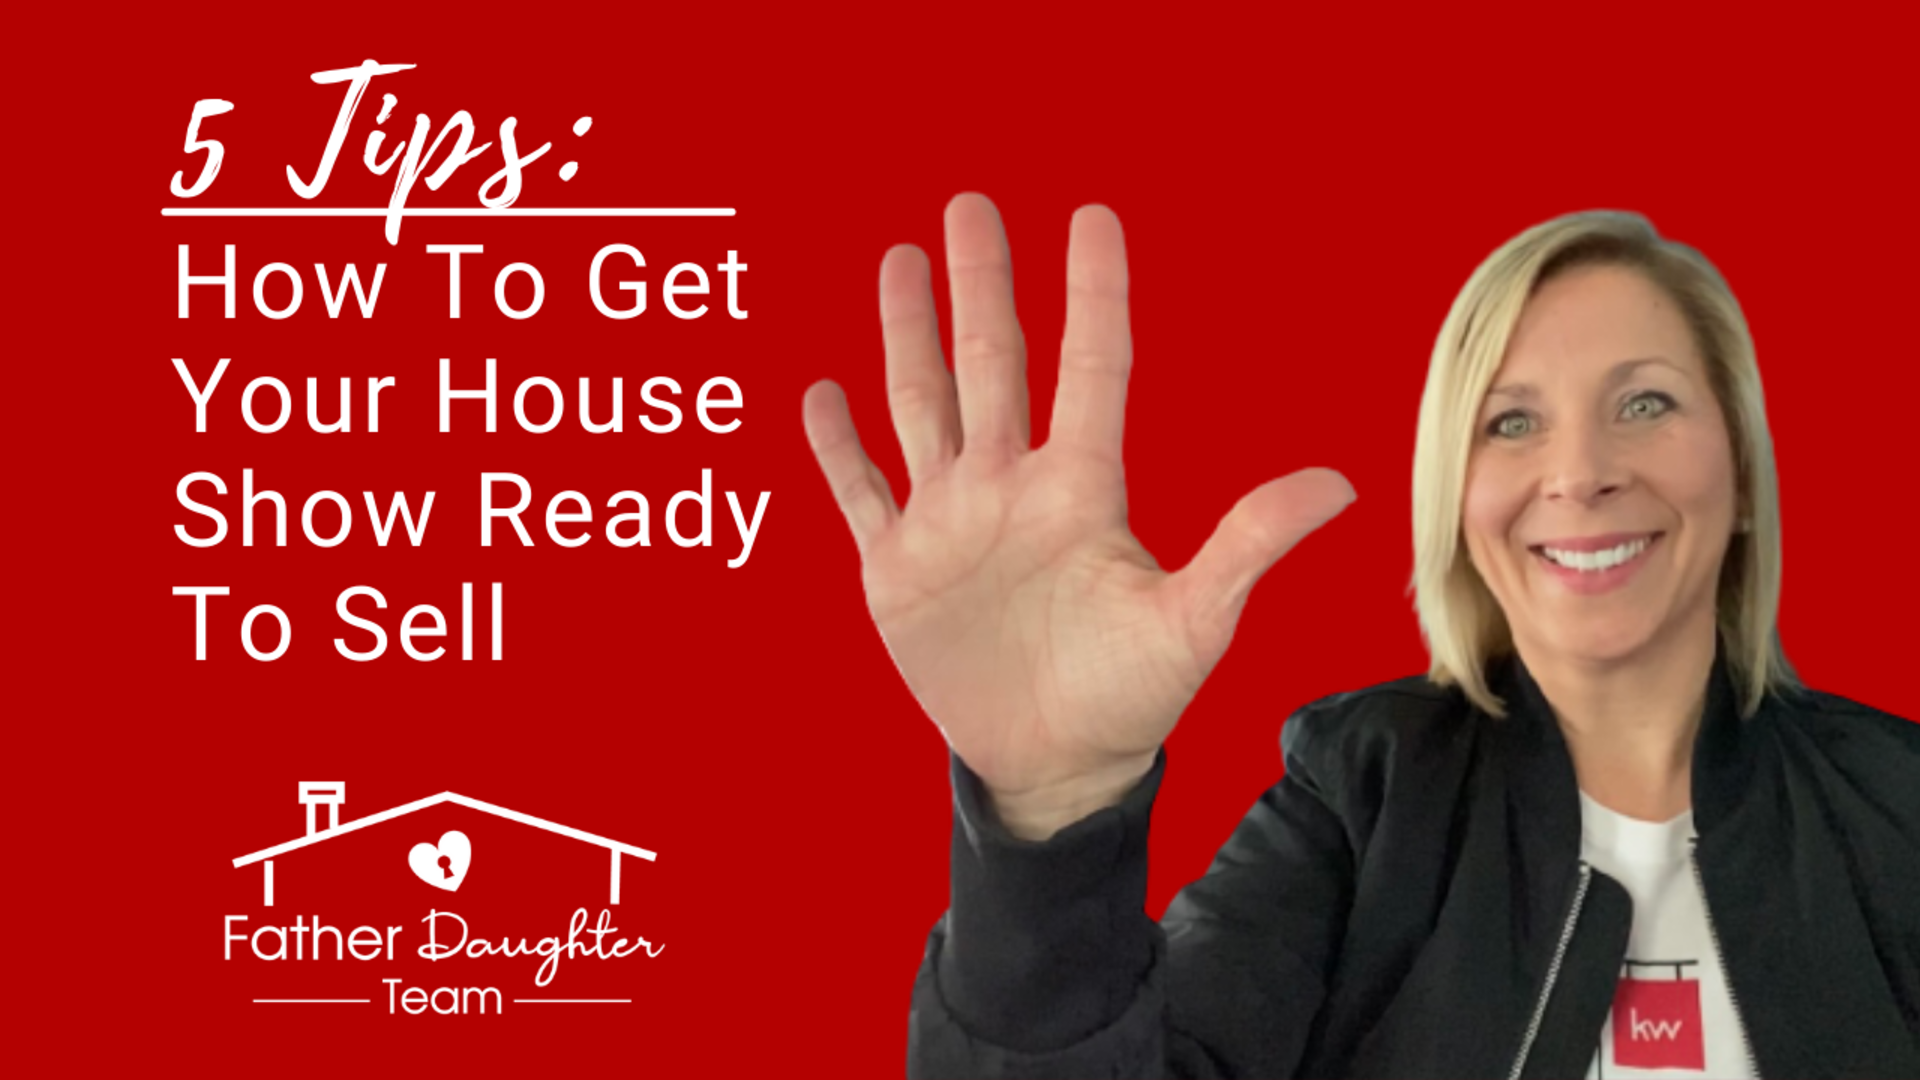 How to get your house show ready to sell